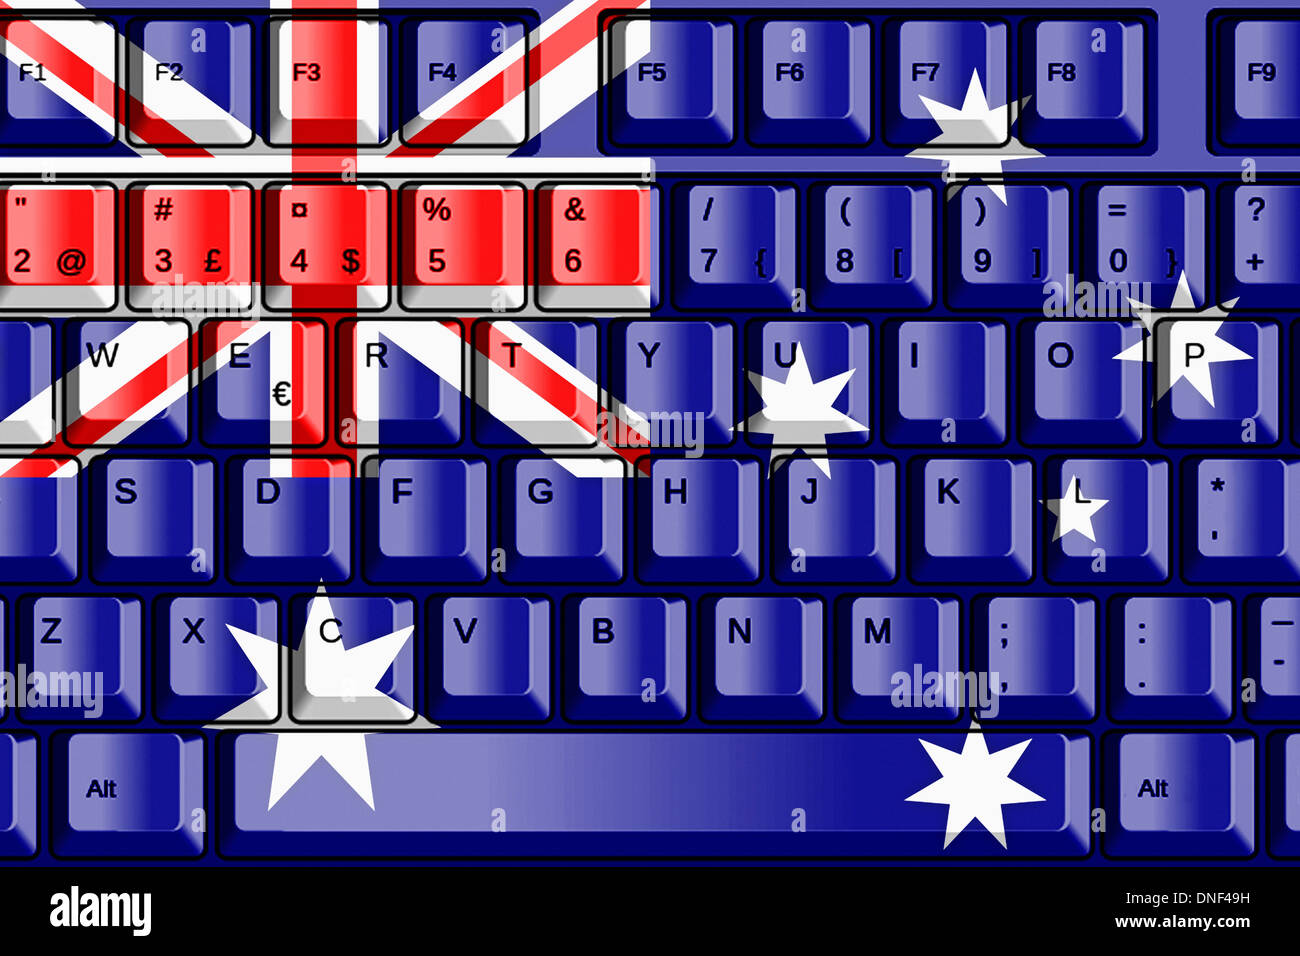 Australia Computer Computer Keyboard With Australia Flag Concept Stock Photo